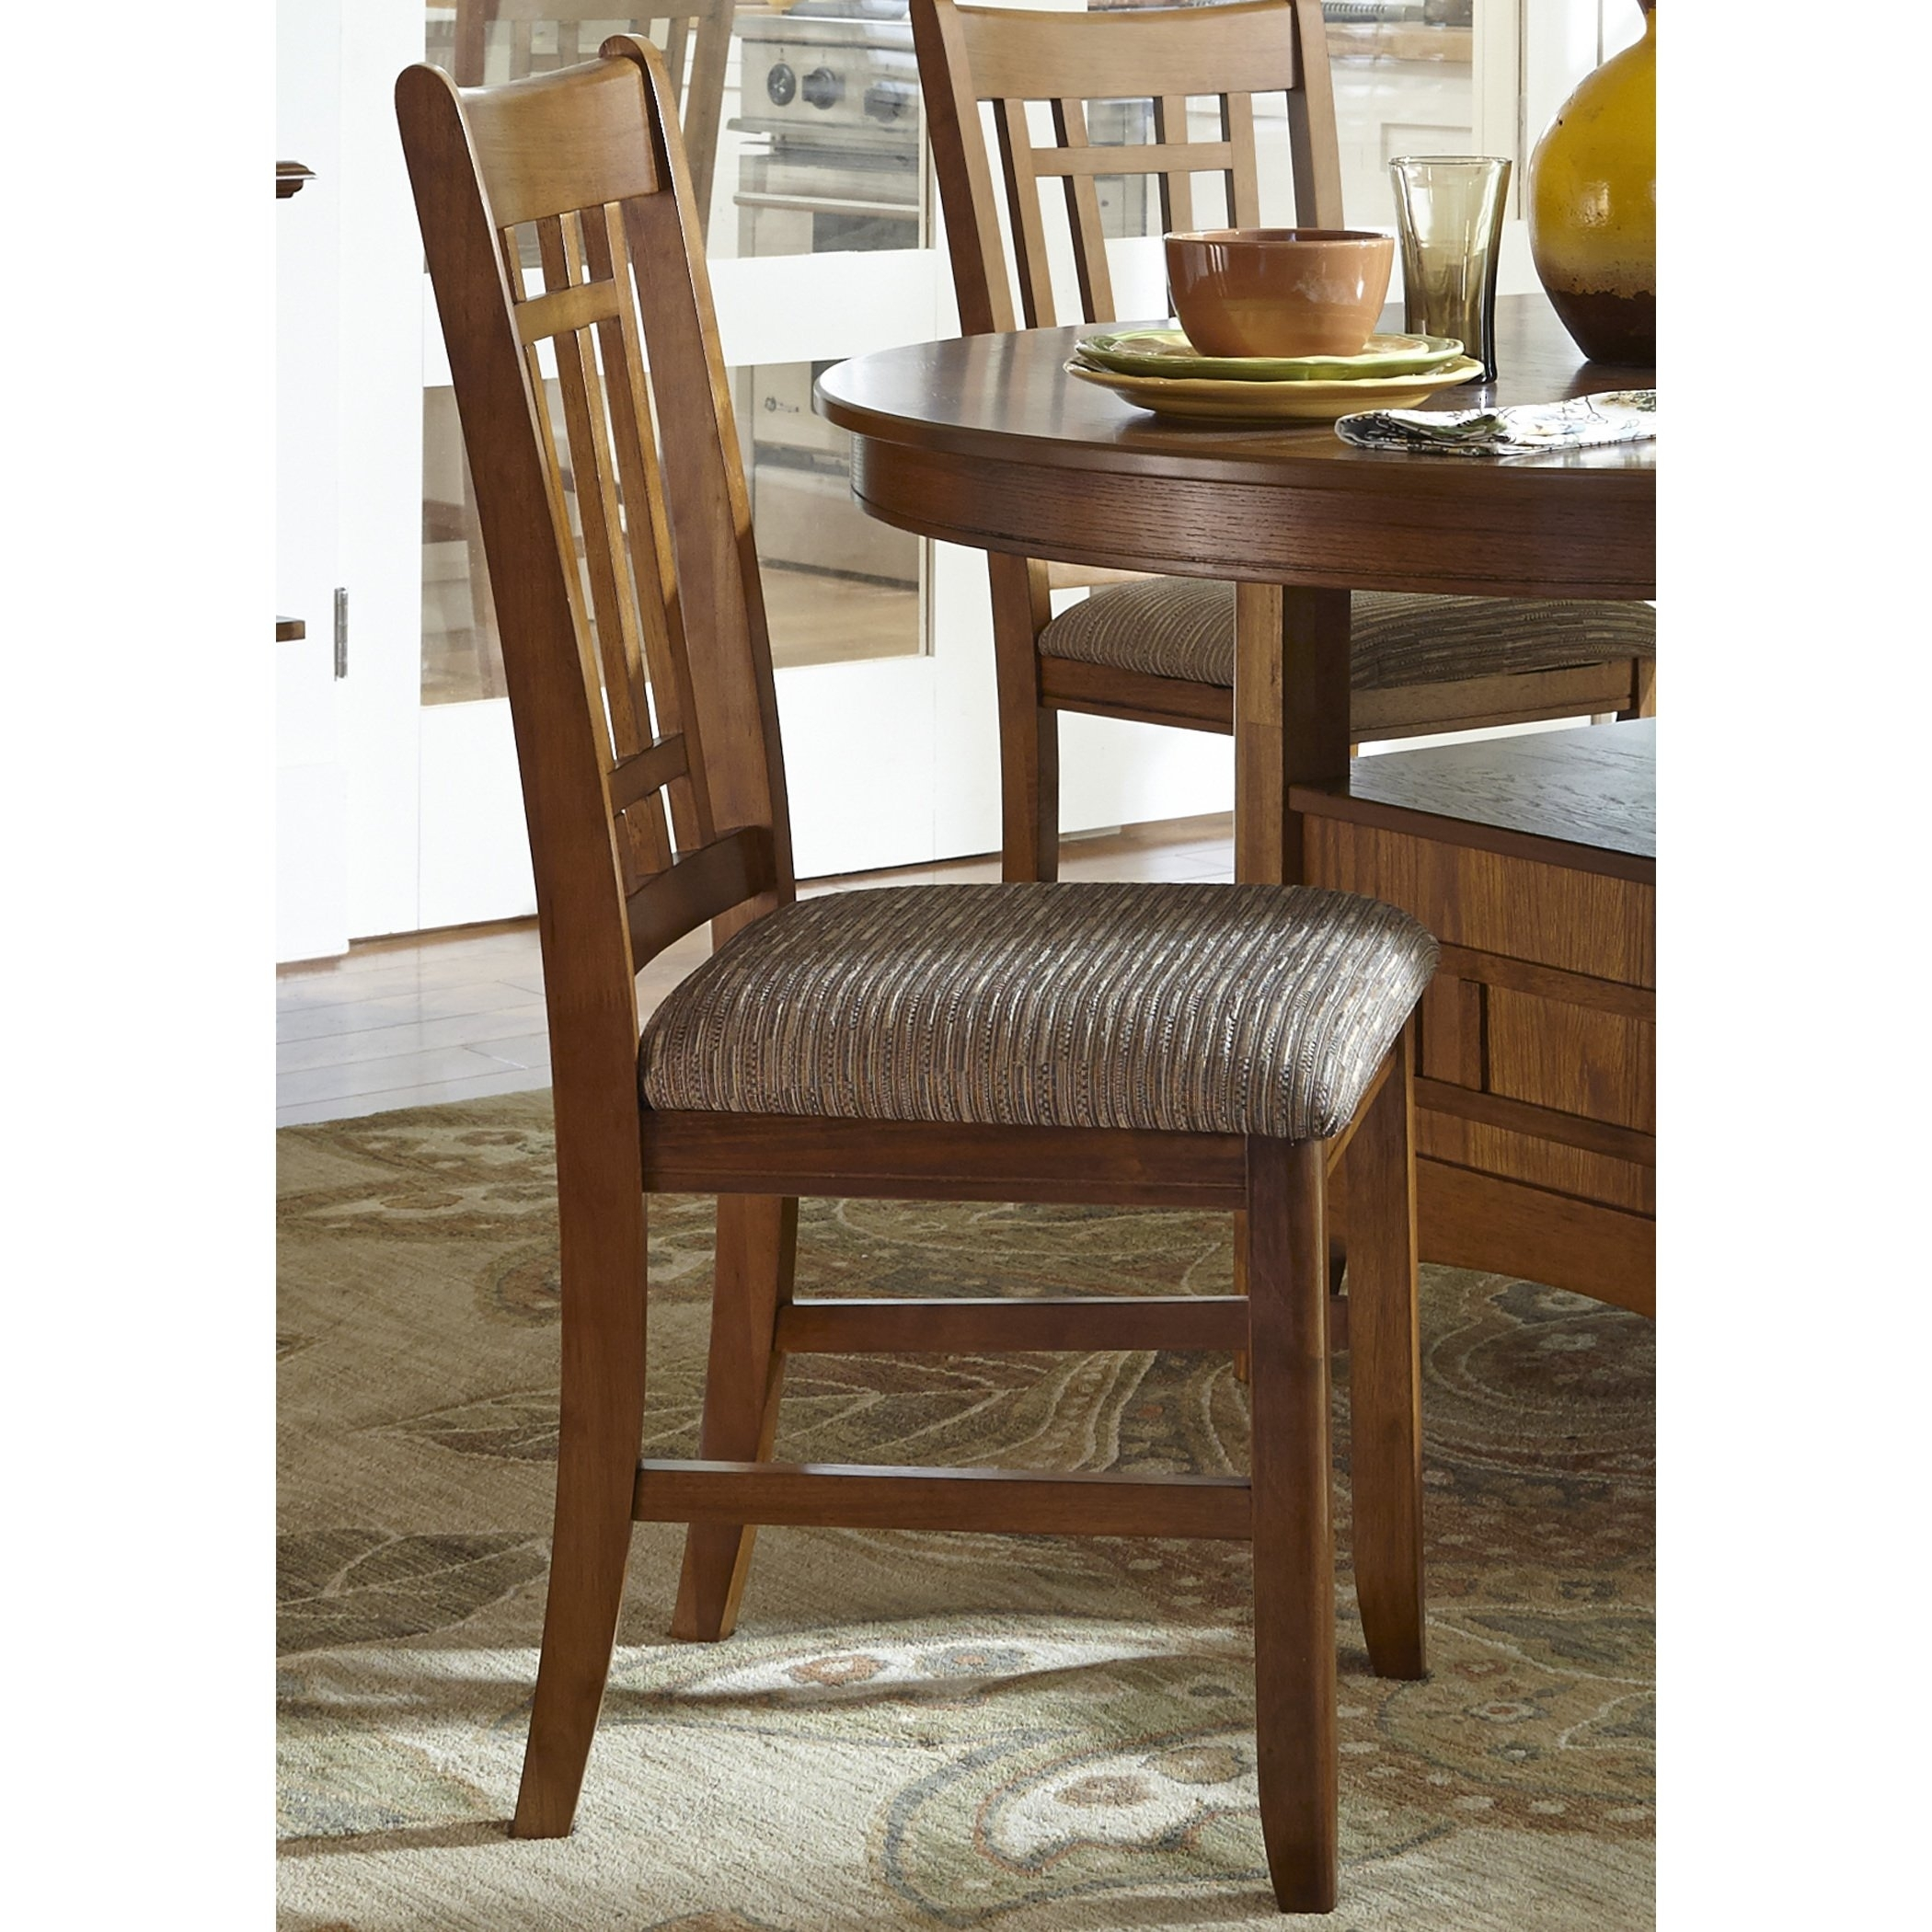 Famous Craftsman Upholstered Side Chairs In Shop Santa Rosa Oak Mission Upholstered Dining Chair – On Sale (View 3 of 20)